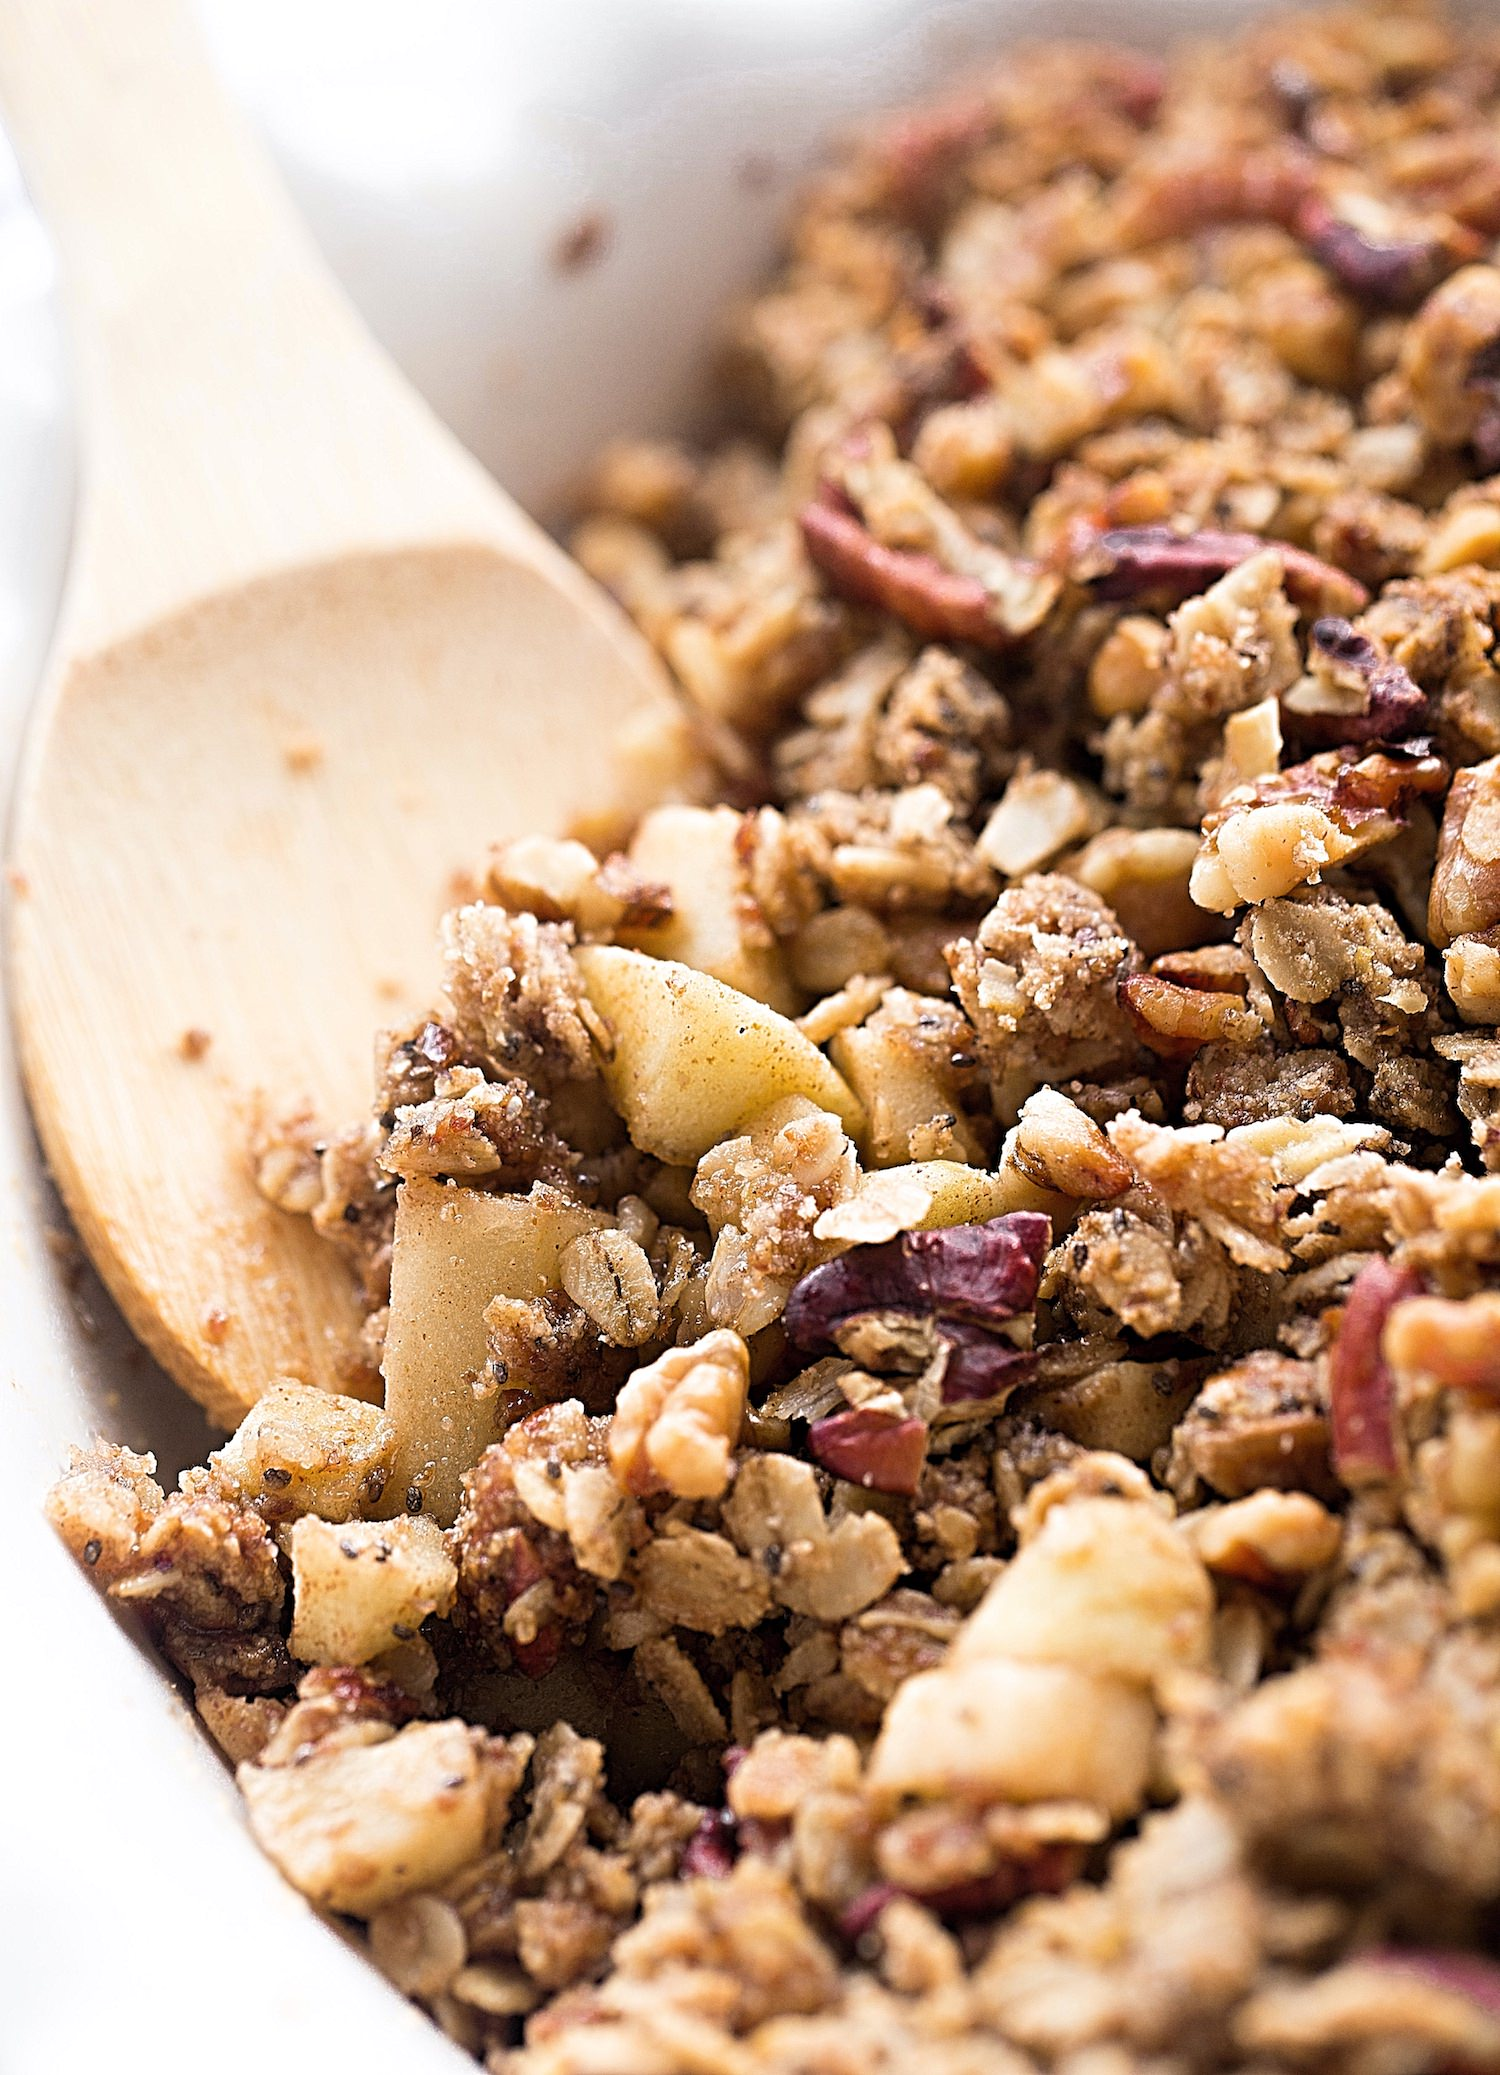 Wholesome Nutty Apple Crumble: tart apples topped with a nutty, cinnamon oat crumble. Gluten-free, vegan, and nutrient dense! Video included. | TrufflesandTrends.com